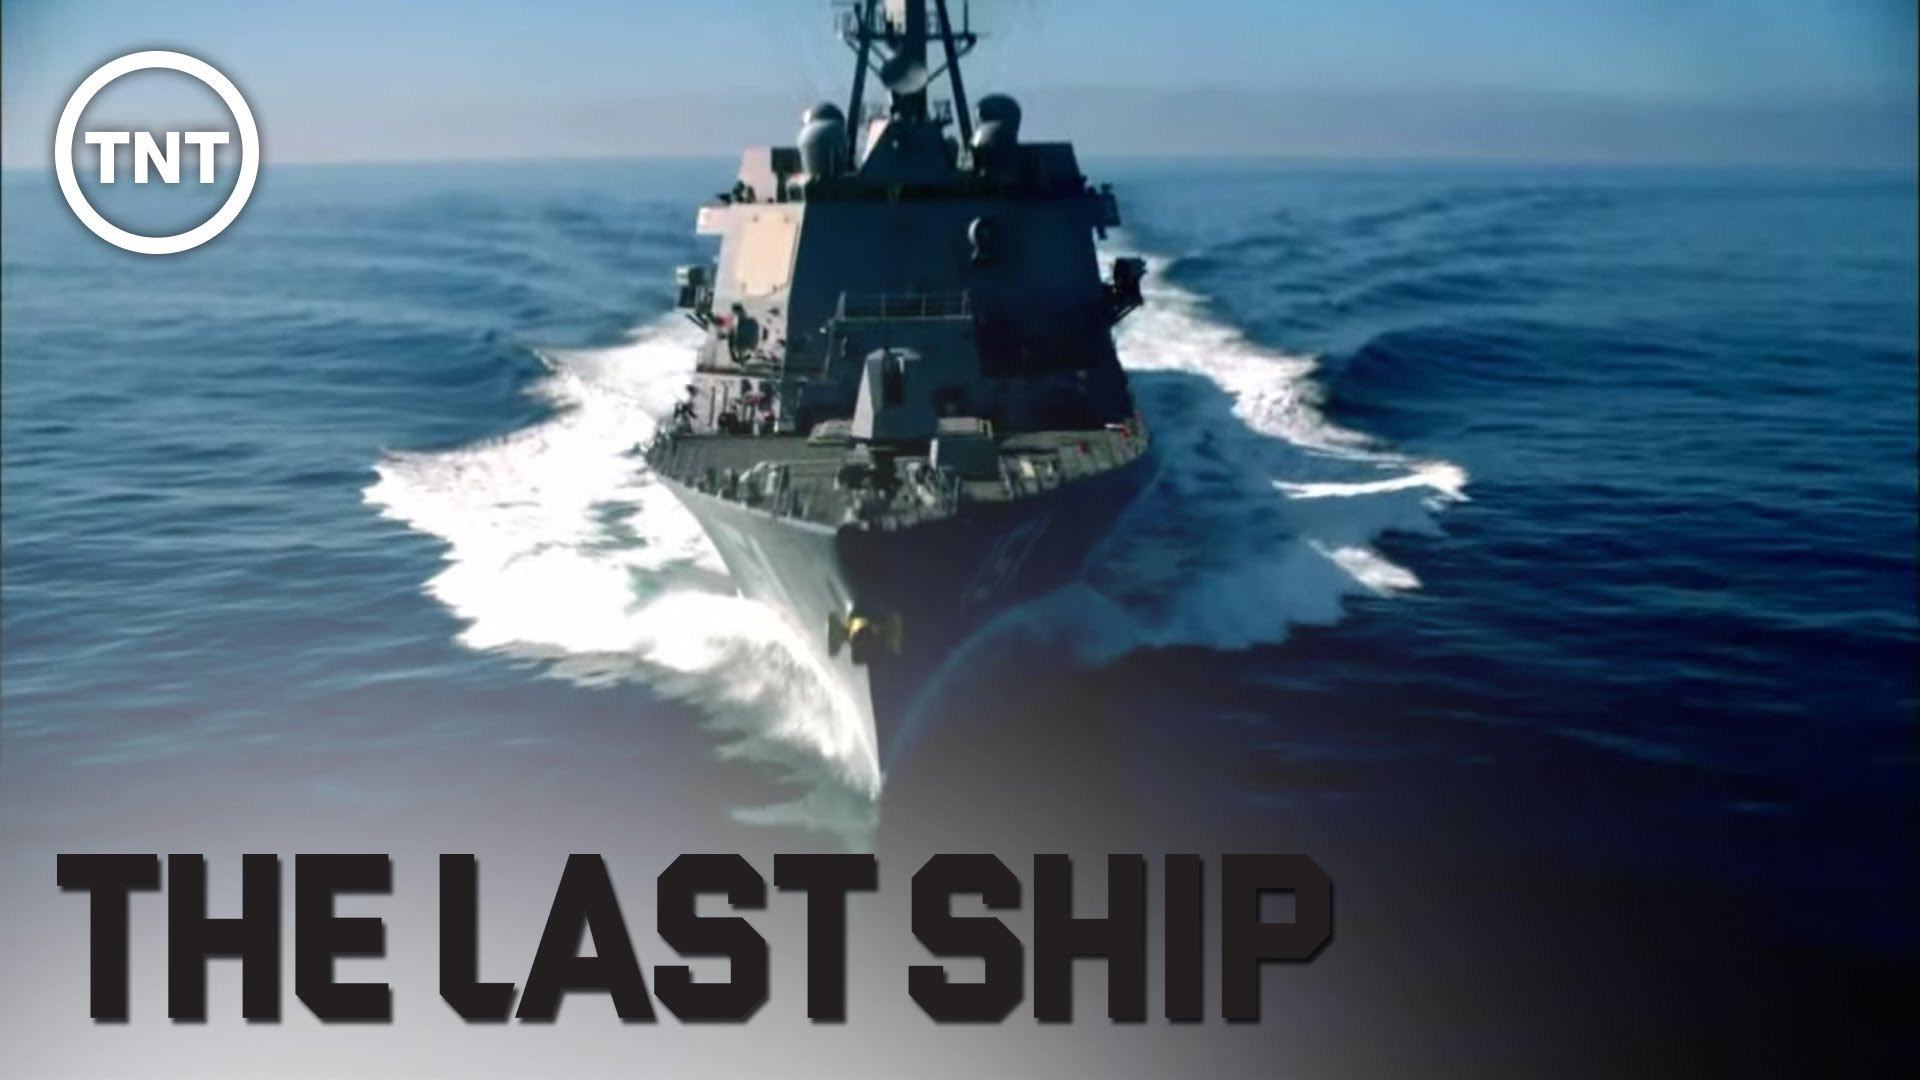 The Last Ship in motion